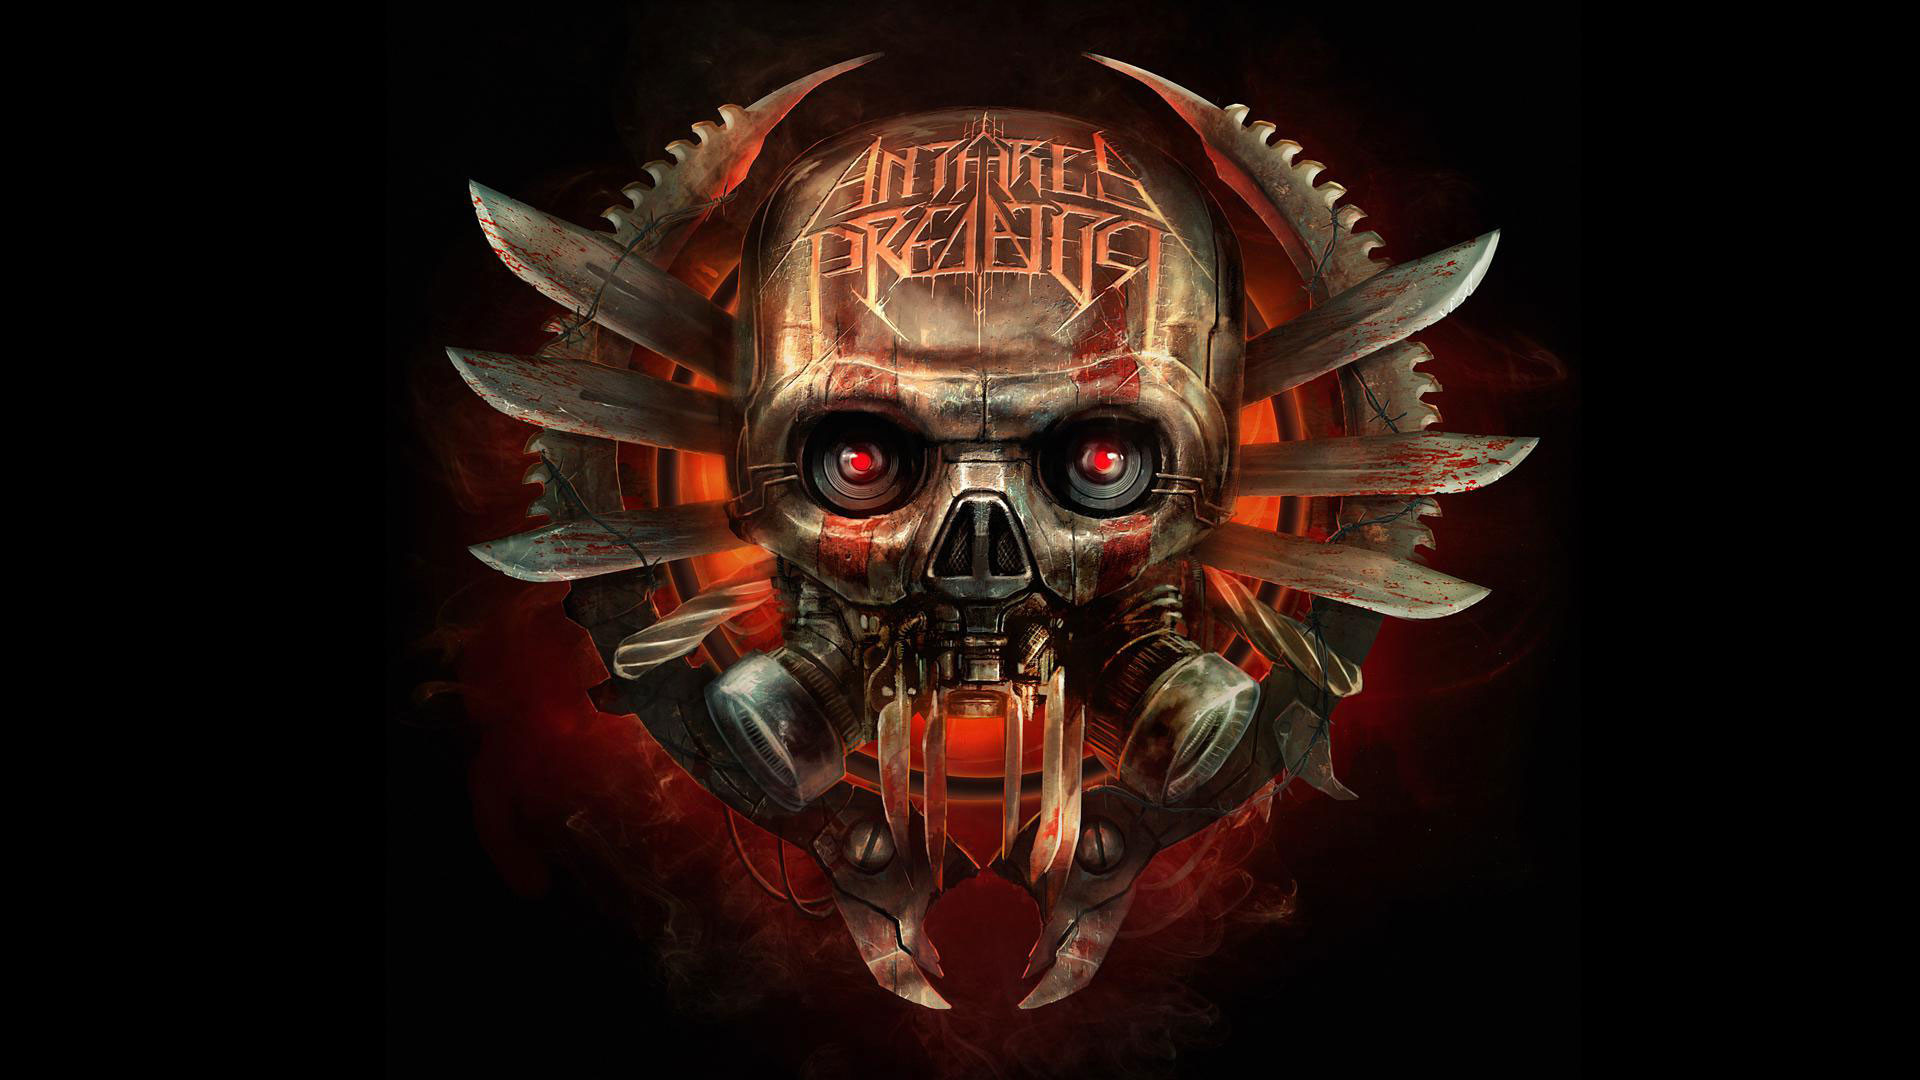 1920x1080 hd pics photos attractive skull danger red eye weapon 3d logo antares  predator metal hd quality